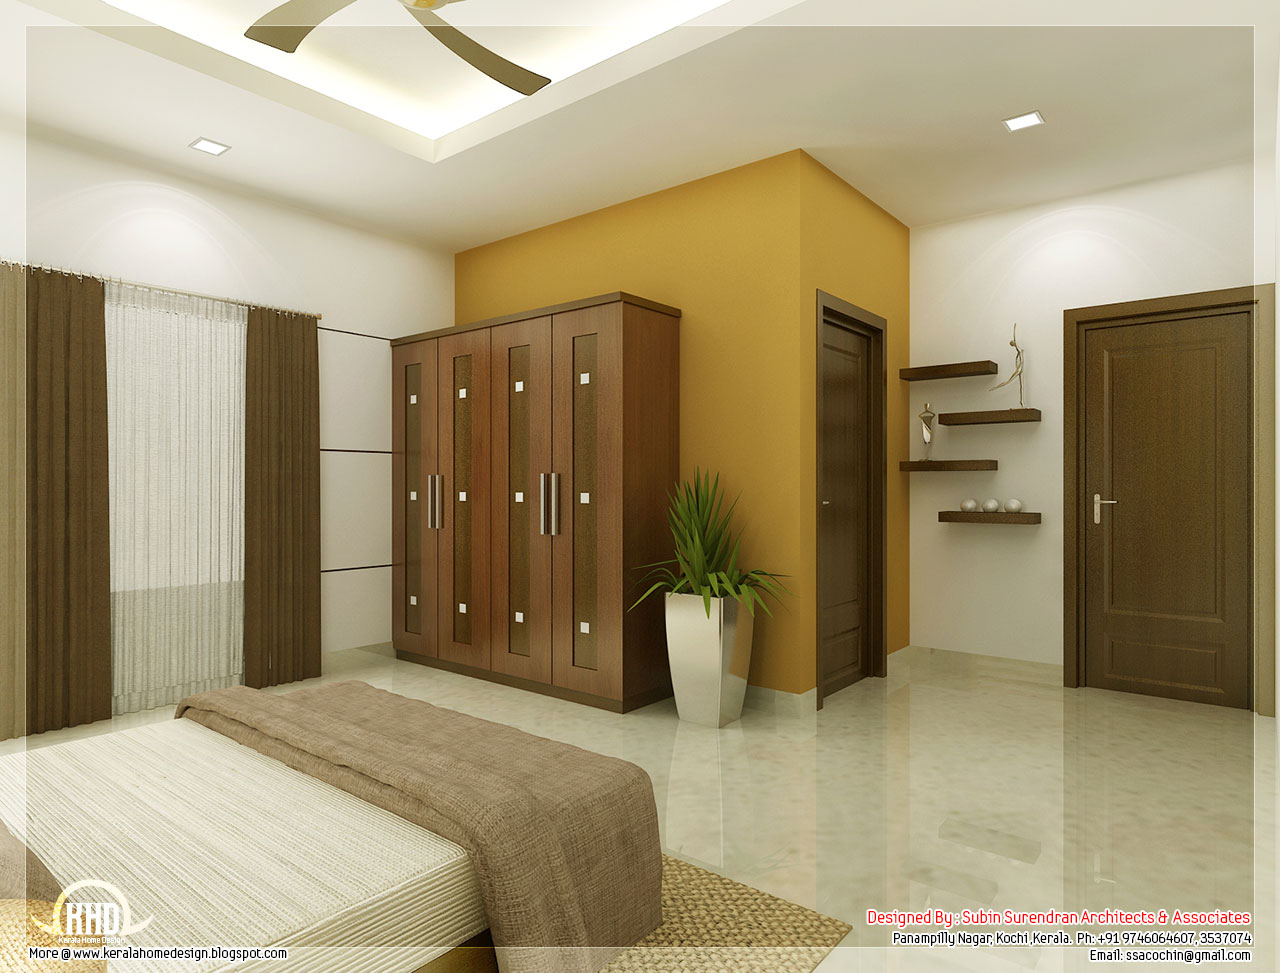 Outstanding India Interior Design Bedroom Ideas 1280 x 973 · 197 kB · jpeg